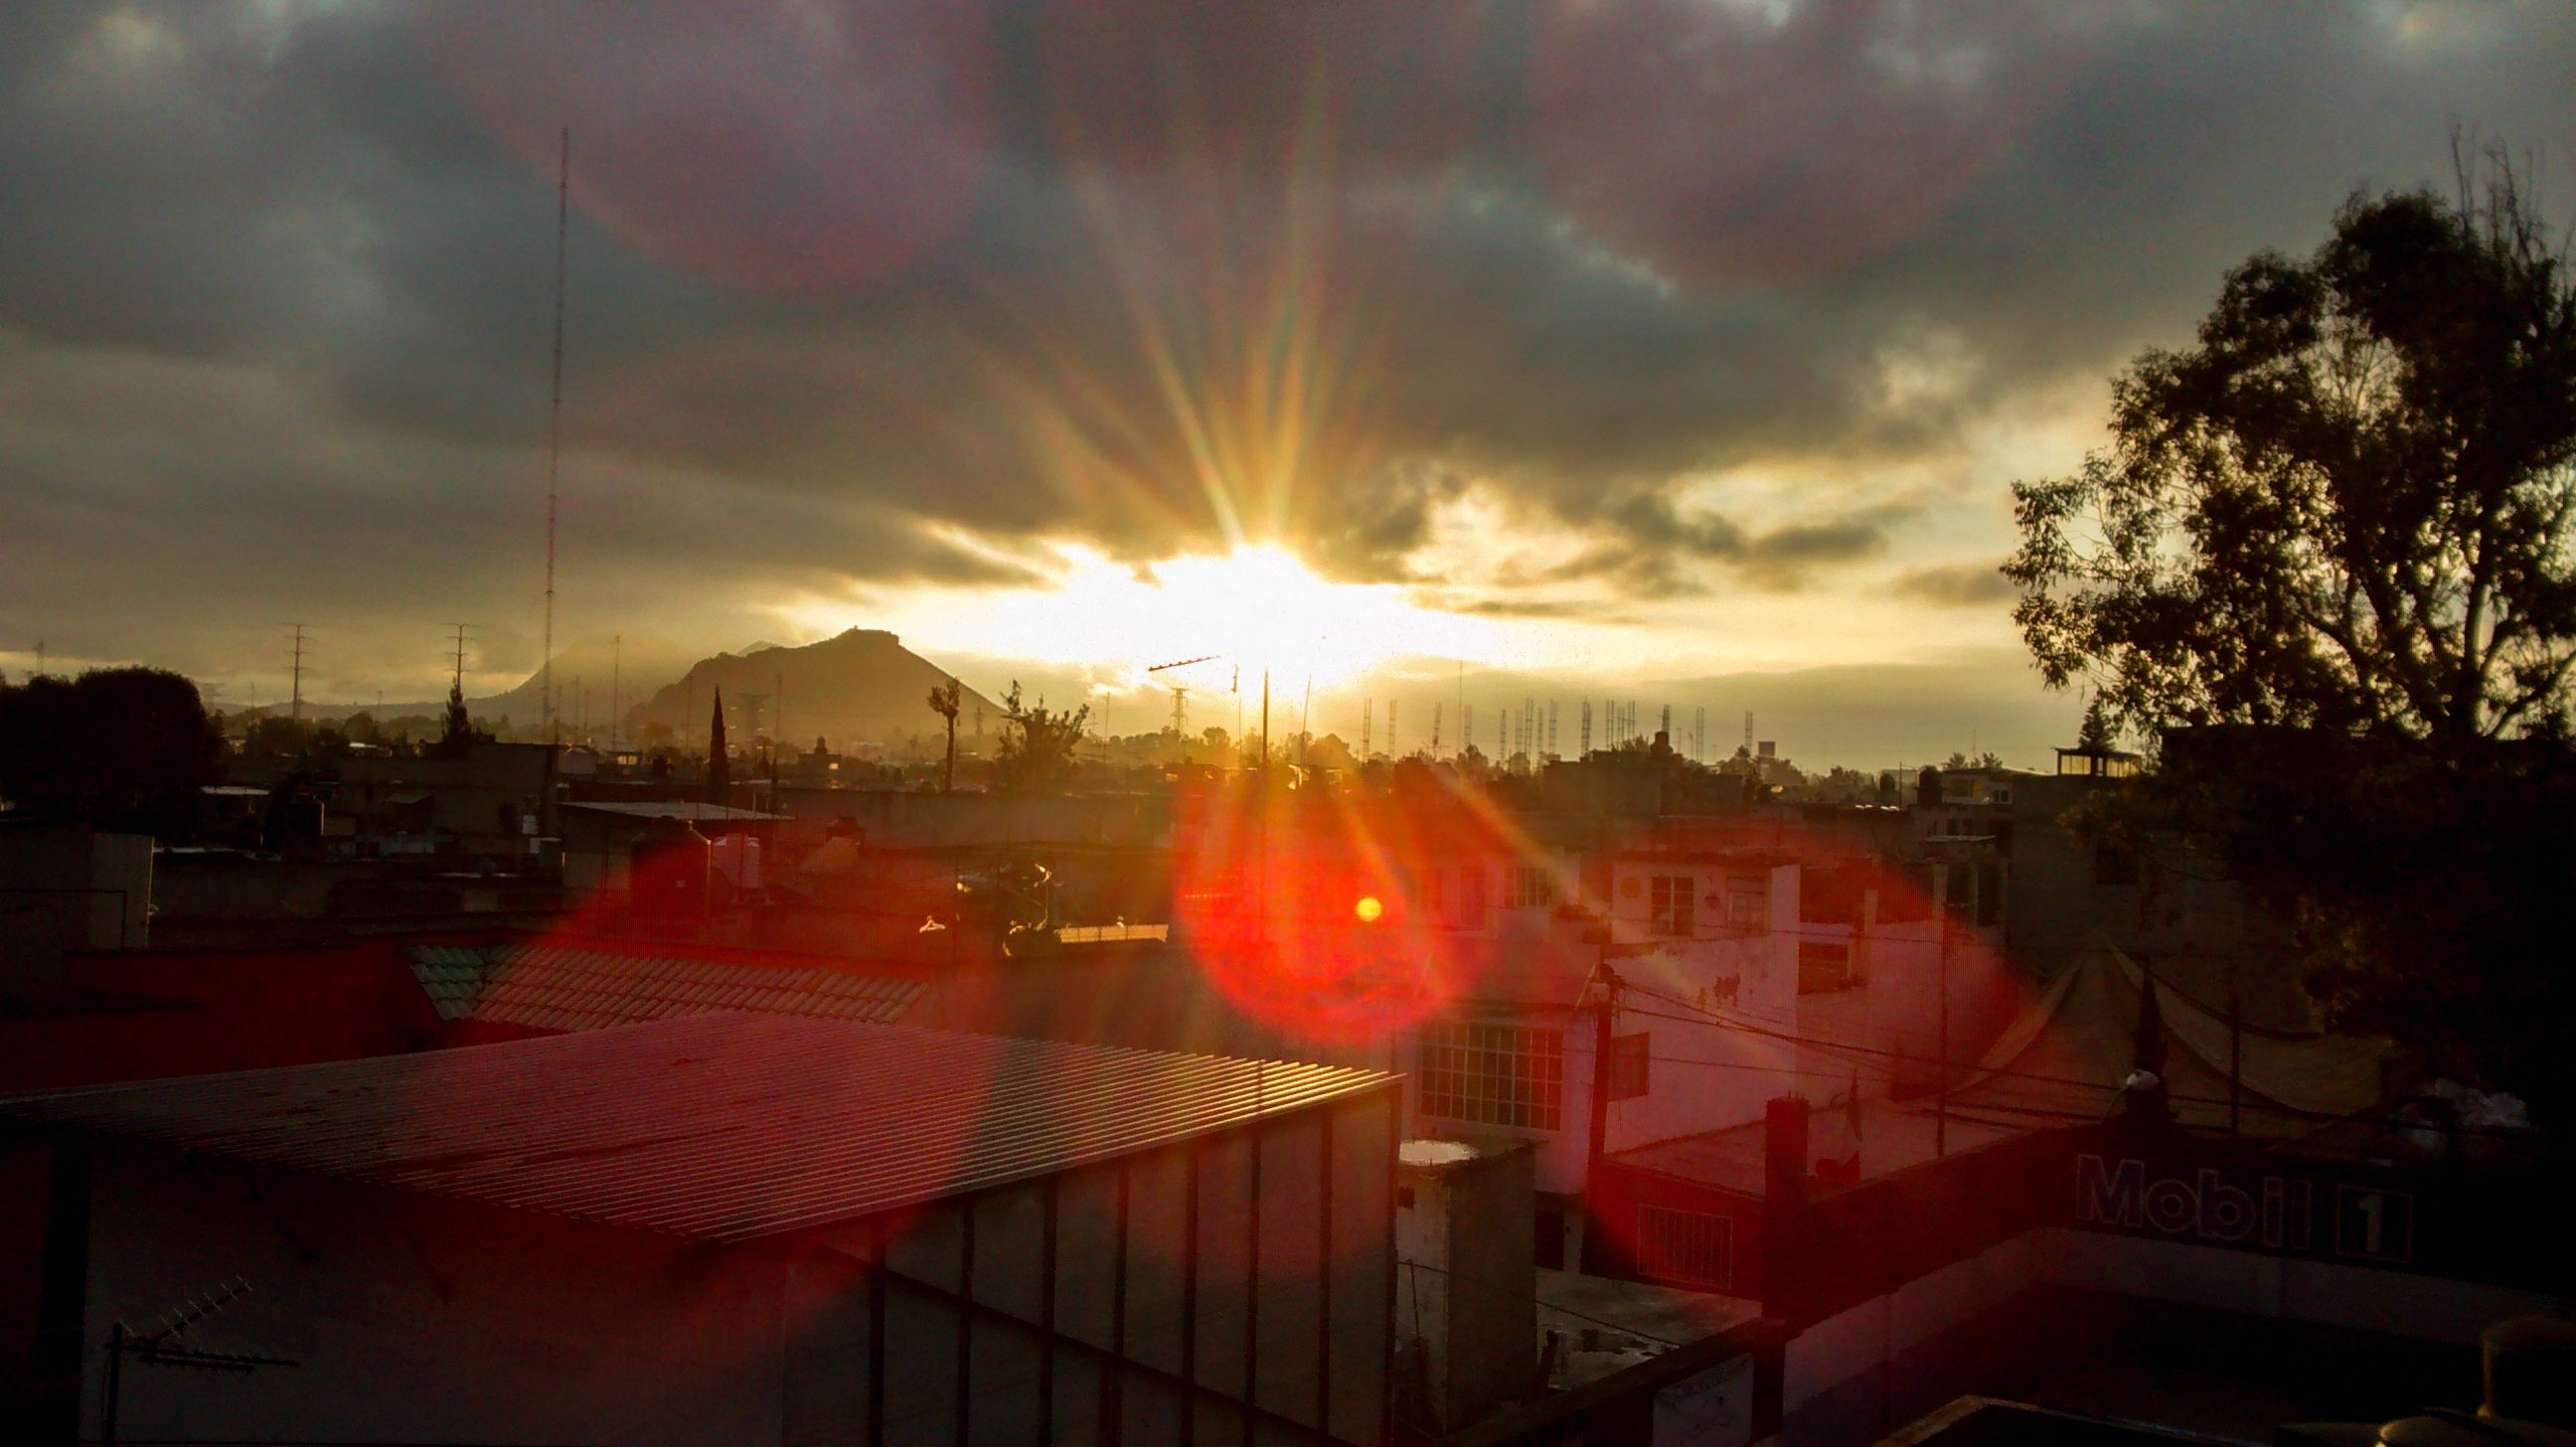 shine, sunset, city, distrito federal, mexico, clouds, sun, amanecer, luz, sol, ciudad, nubes